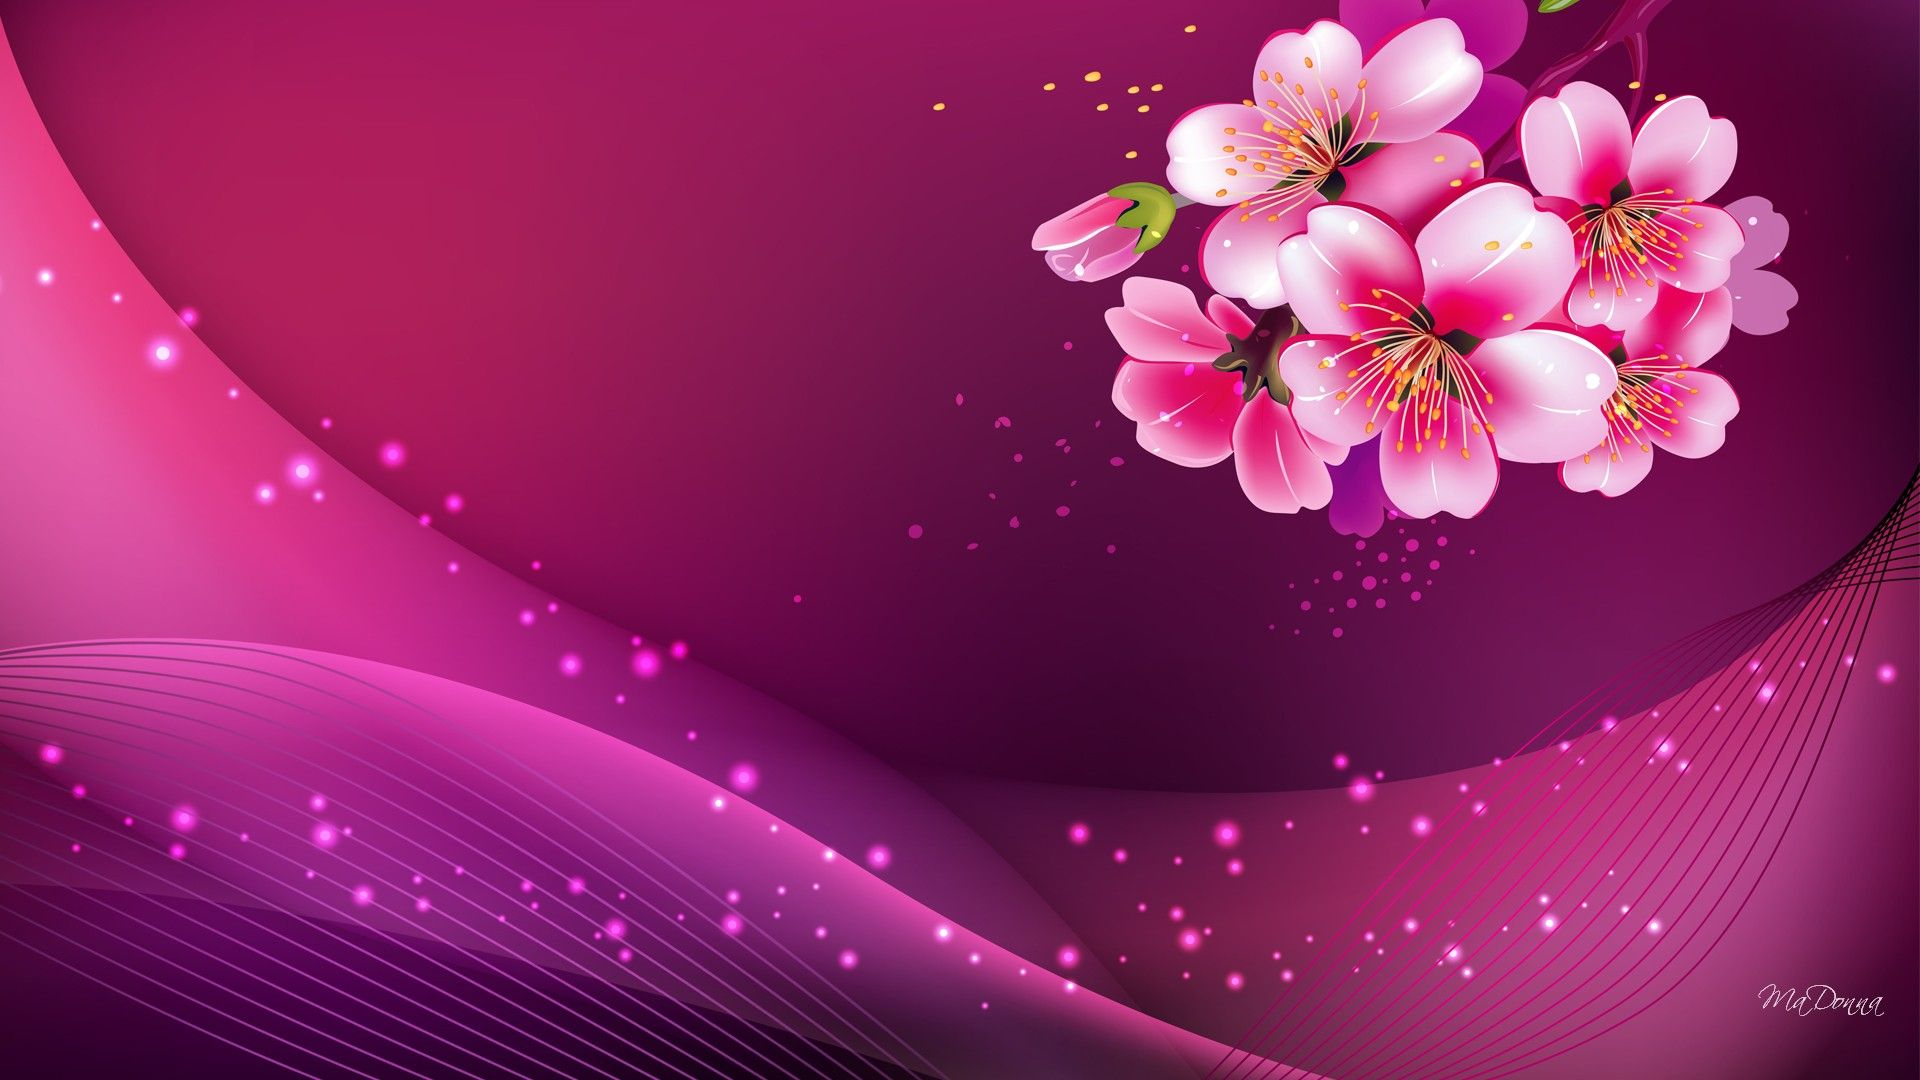 widescreen pink background hd image pc colour Pink Pinterest HD Wallpapers Pinterest Hd ...